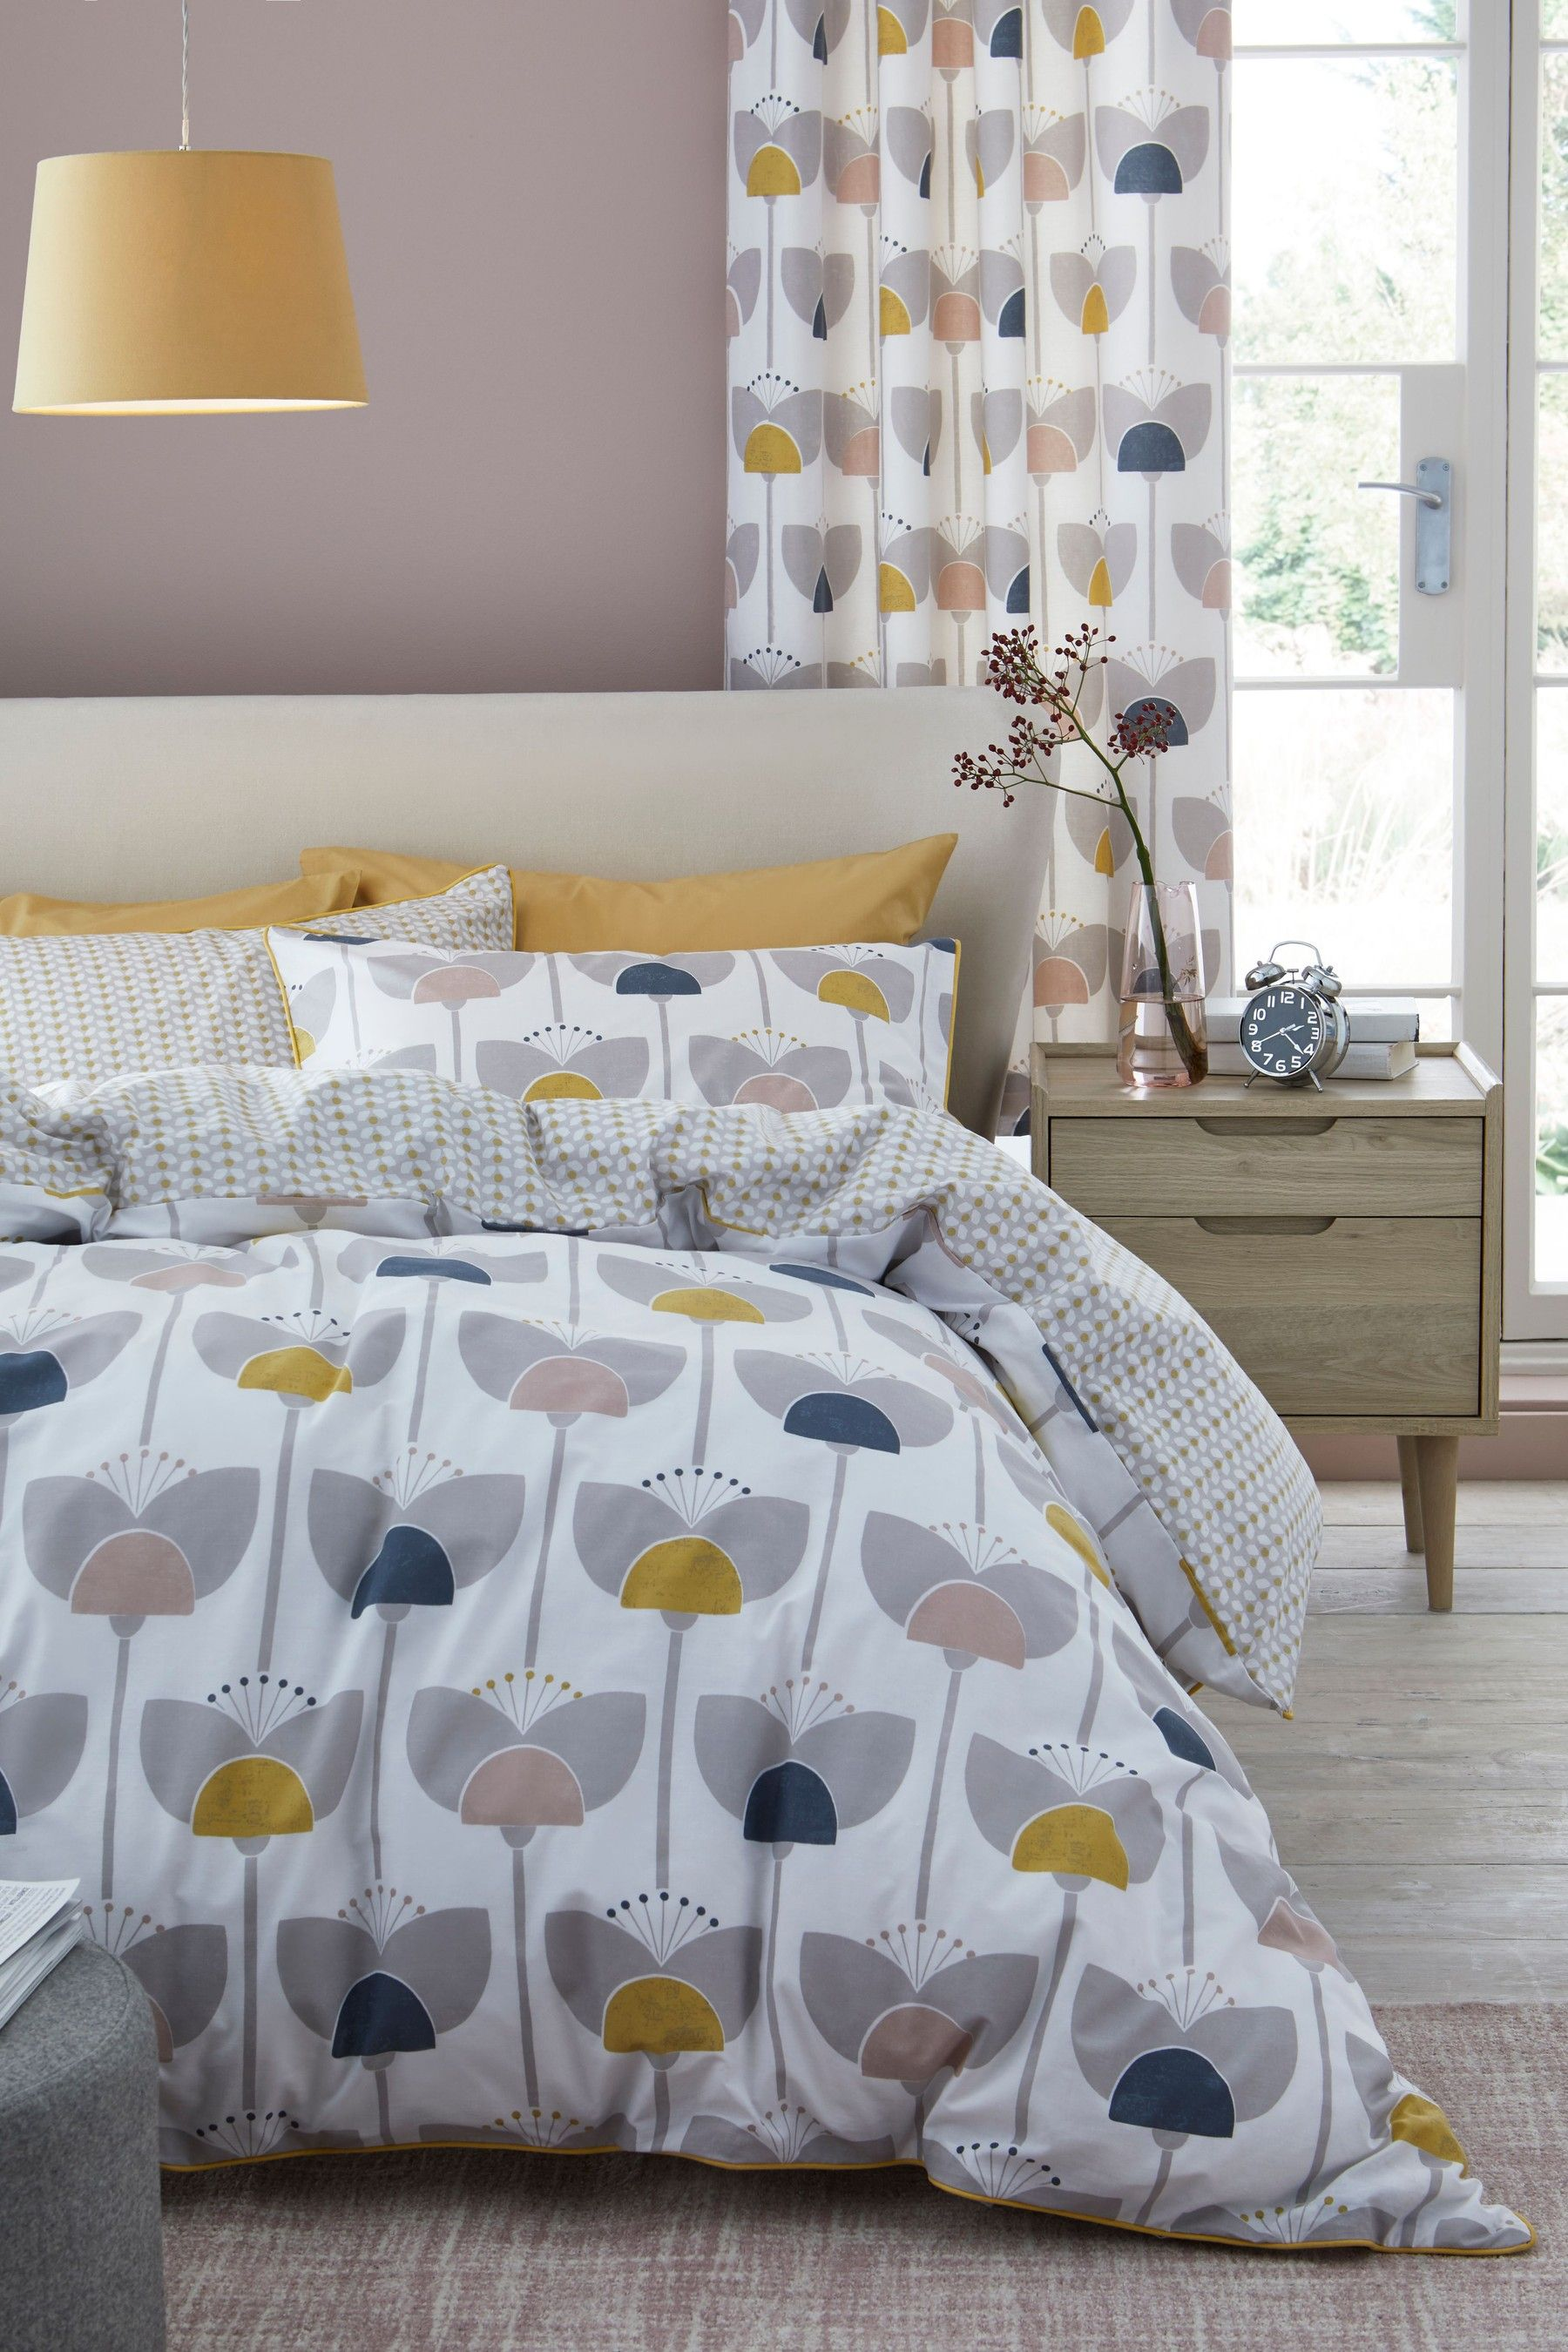 Buy Retro Tulip Duvet Cover and Pillowcase Set from Next